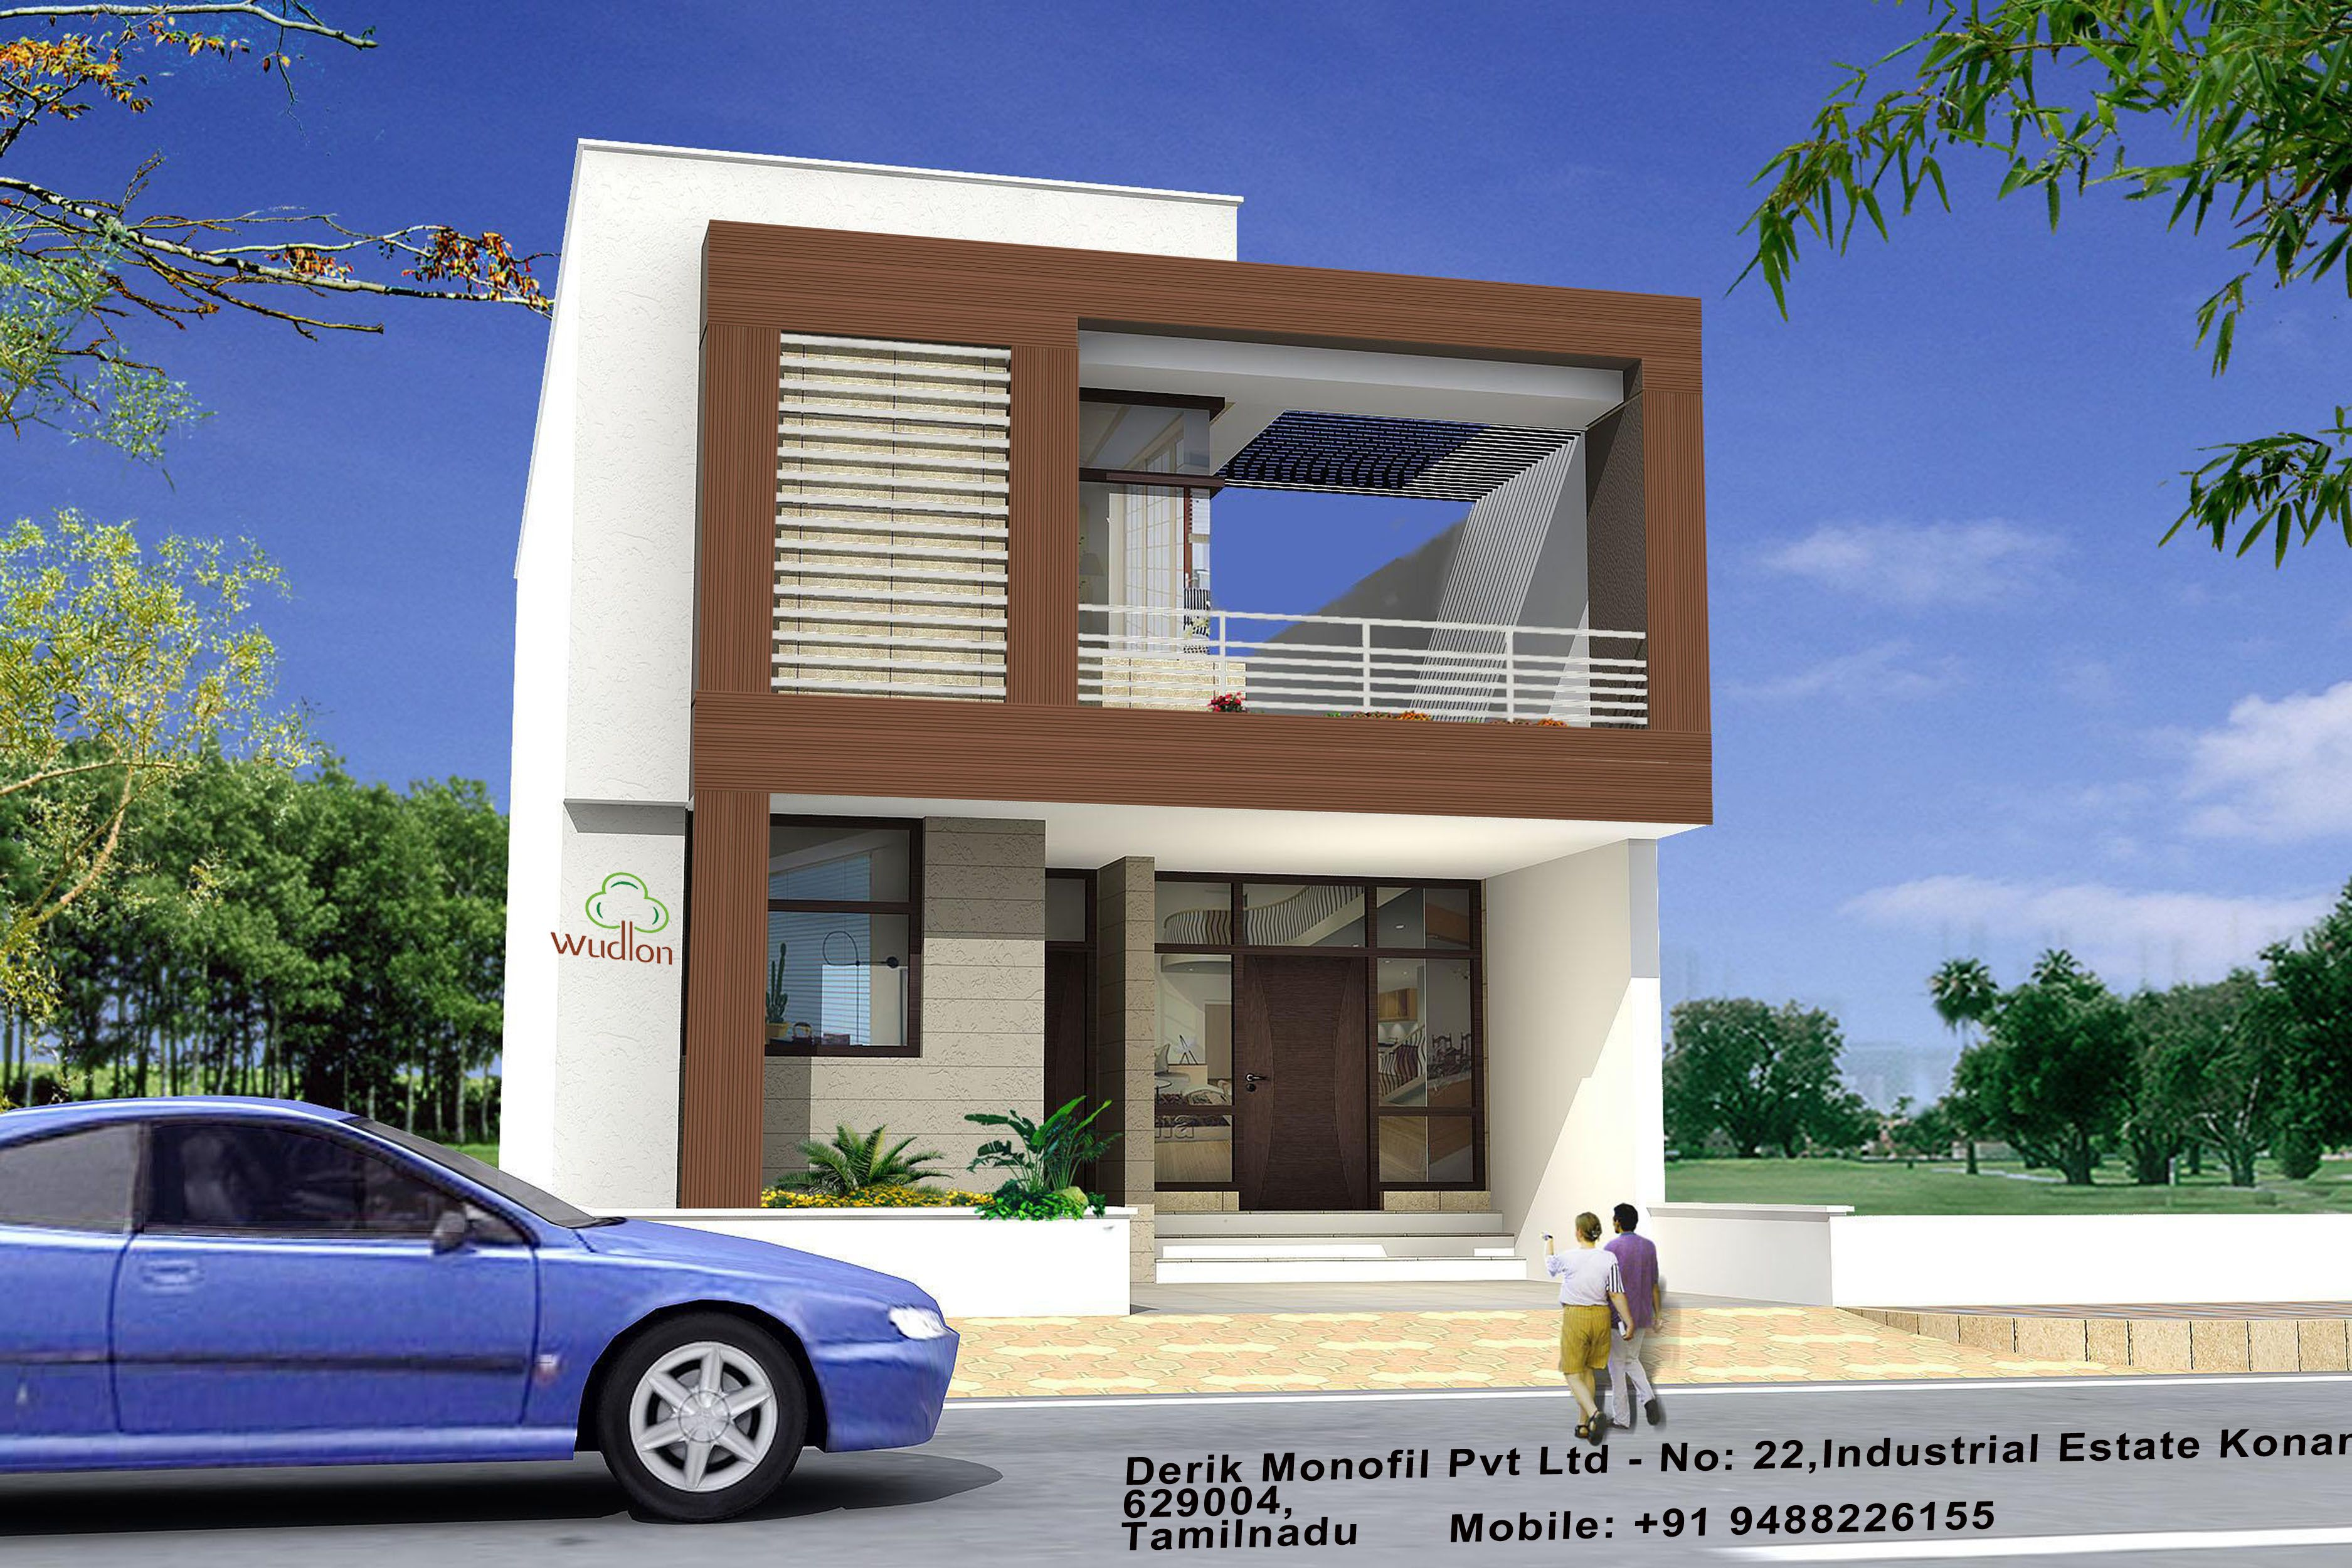 Lovely How To Design Front Elevation Of House Online Part - 3: Elevation Design For The House - GharExpert